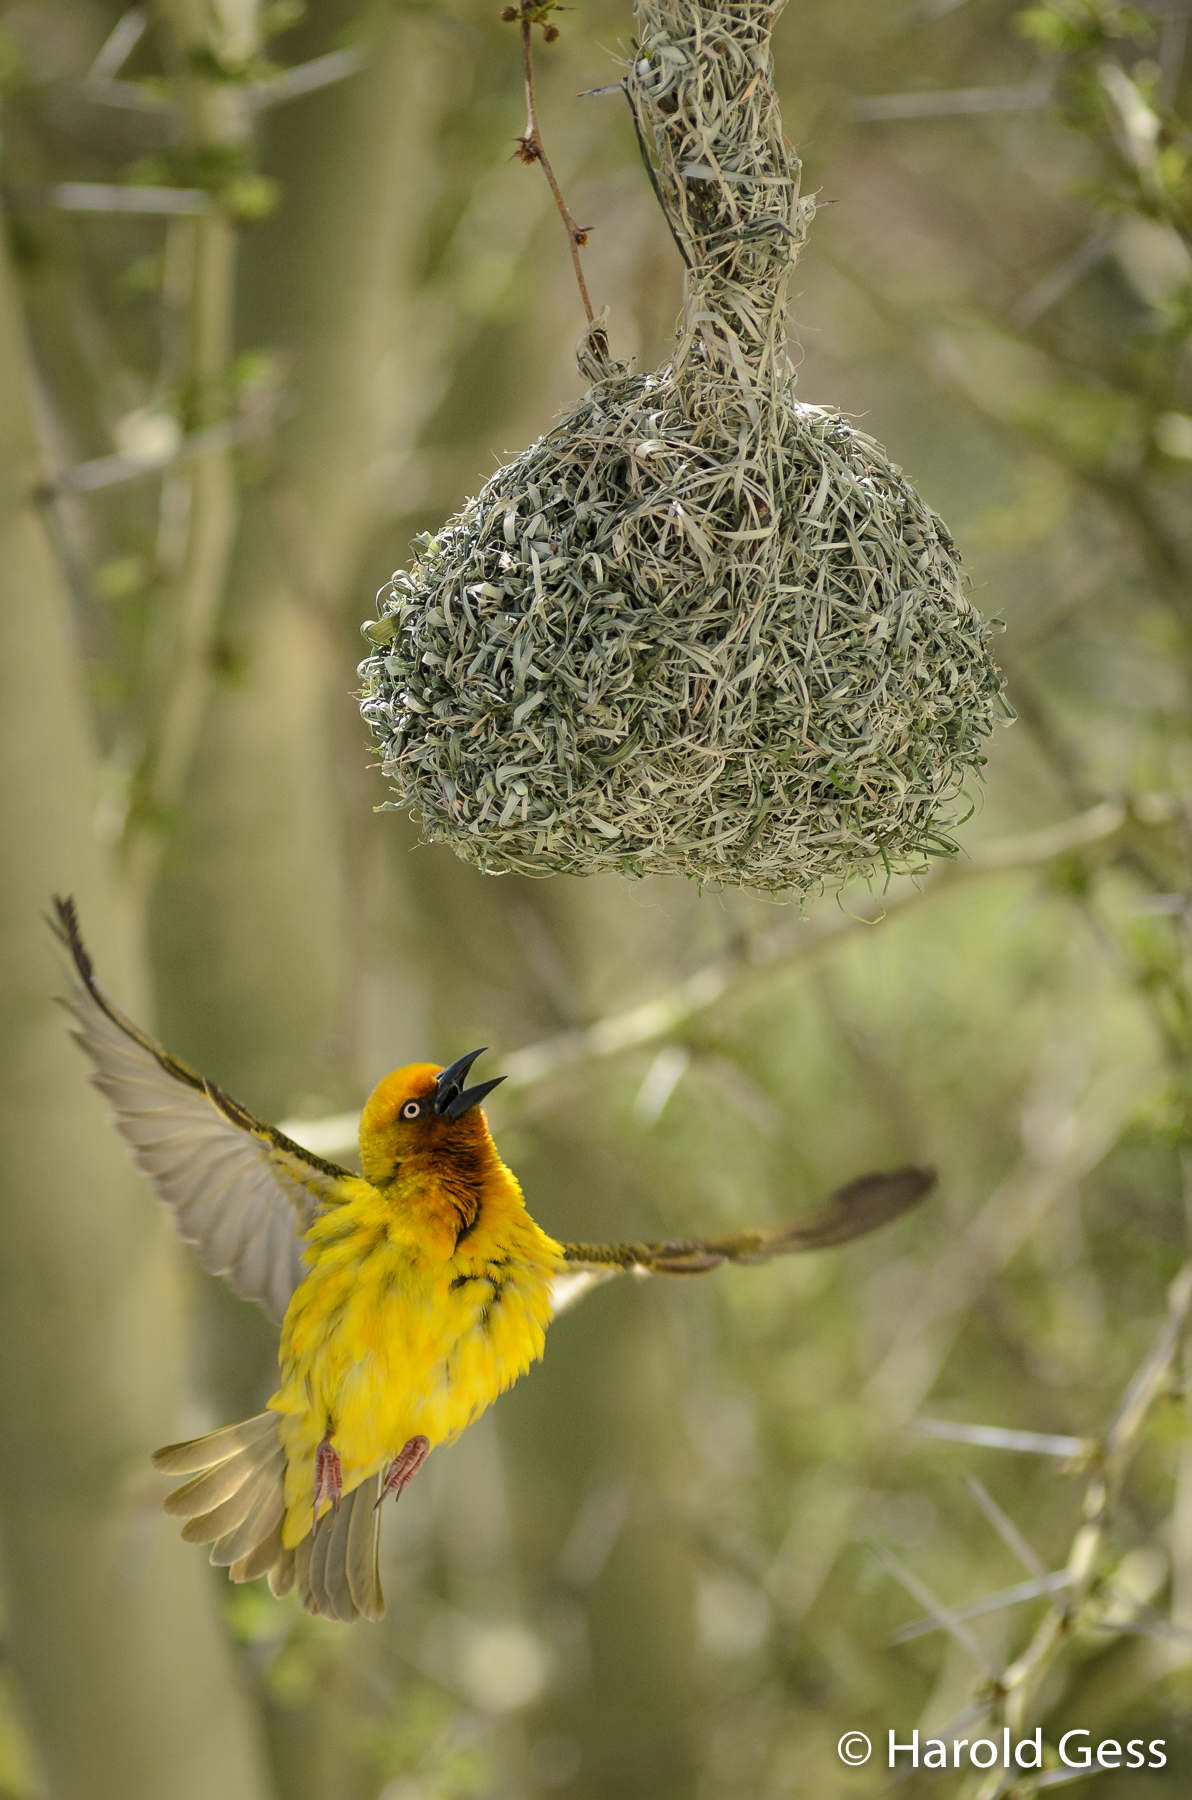 Cape Weaver, Ploceus capensis, male approaching nest, Grahamstown, September 2018